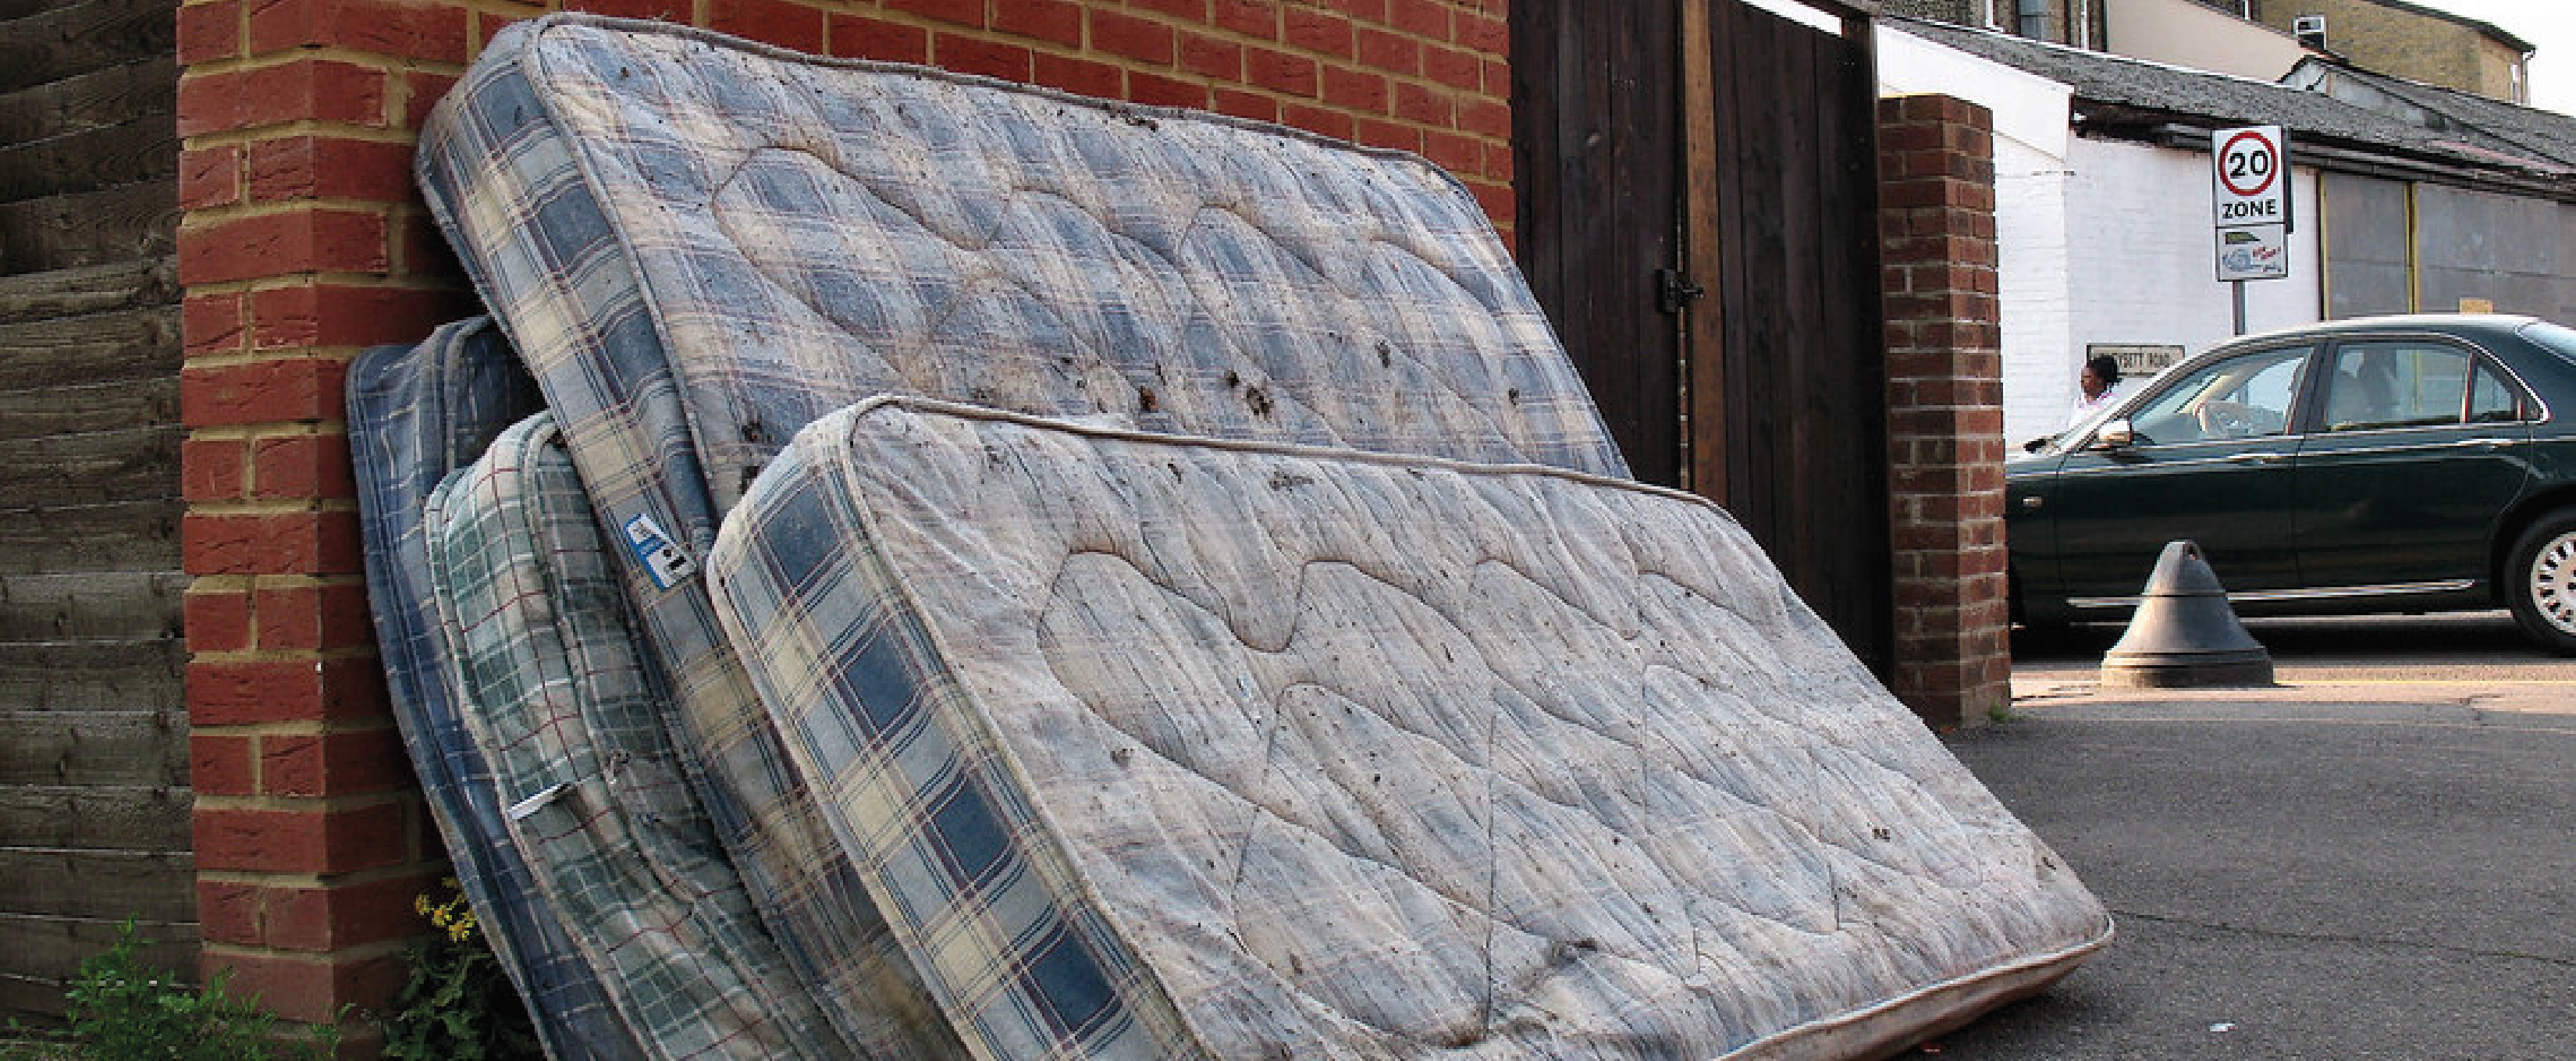 mattress disposal how to save money on mattress removal and collection in london